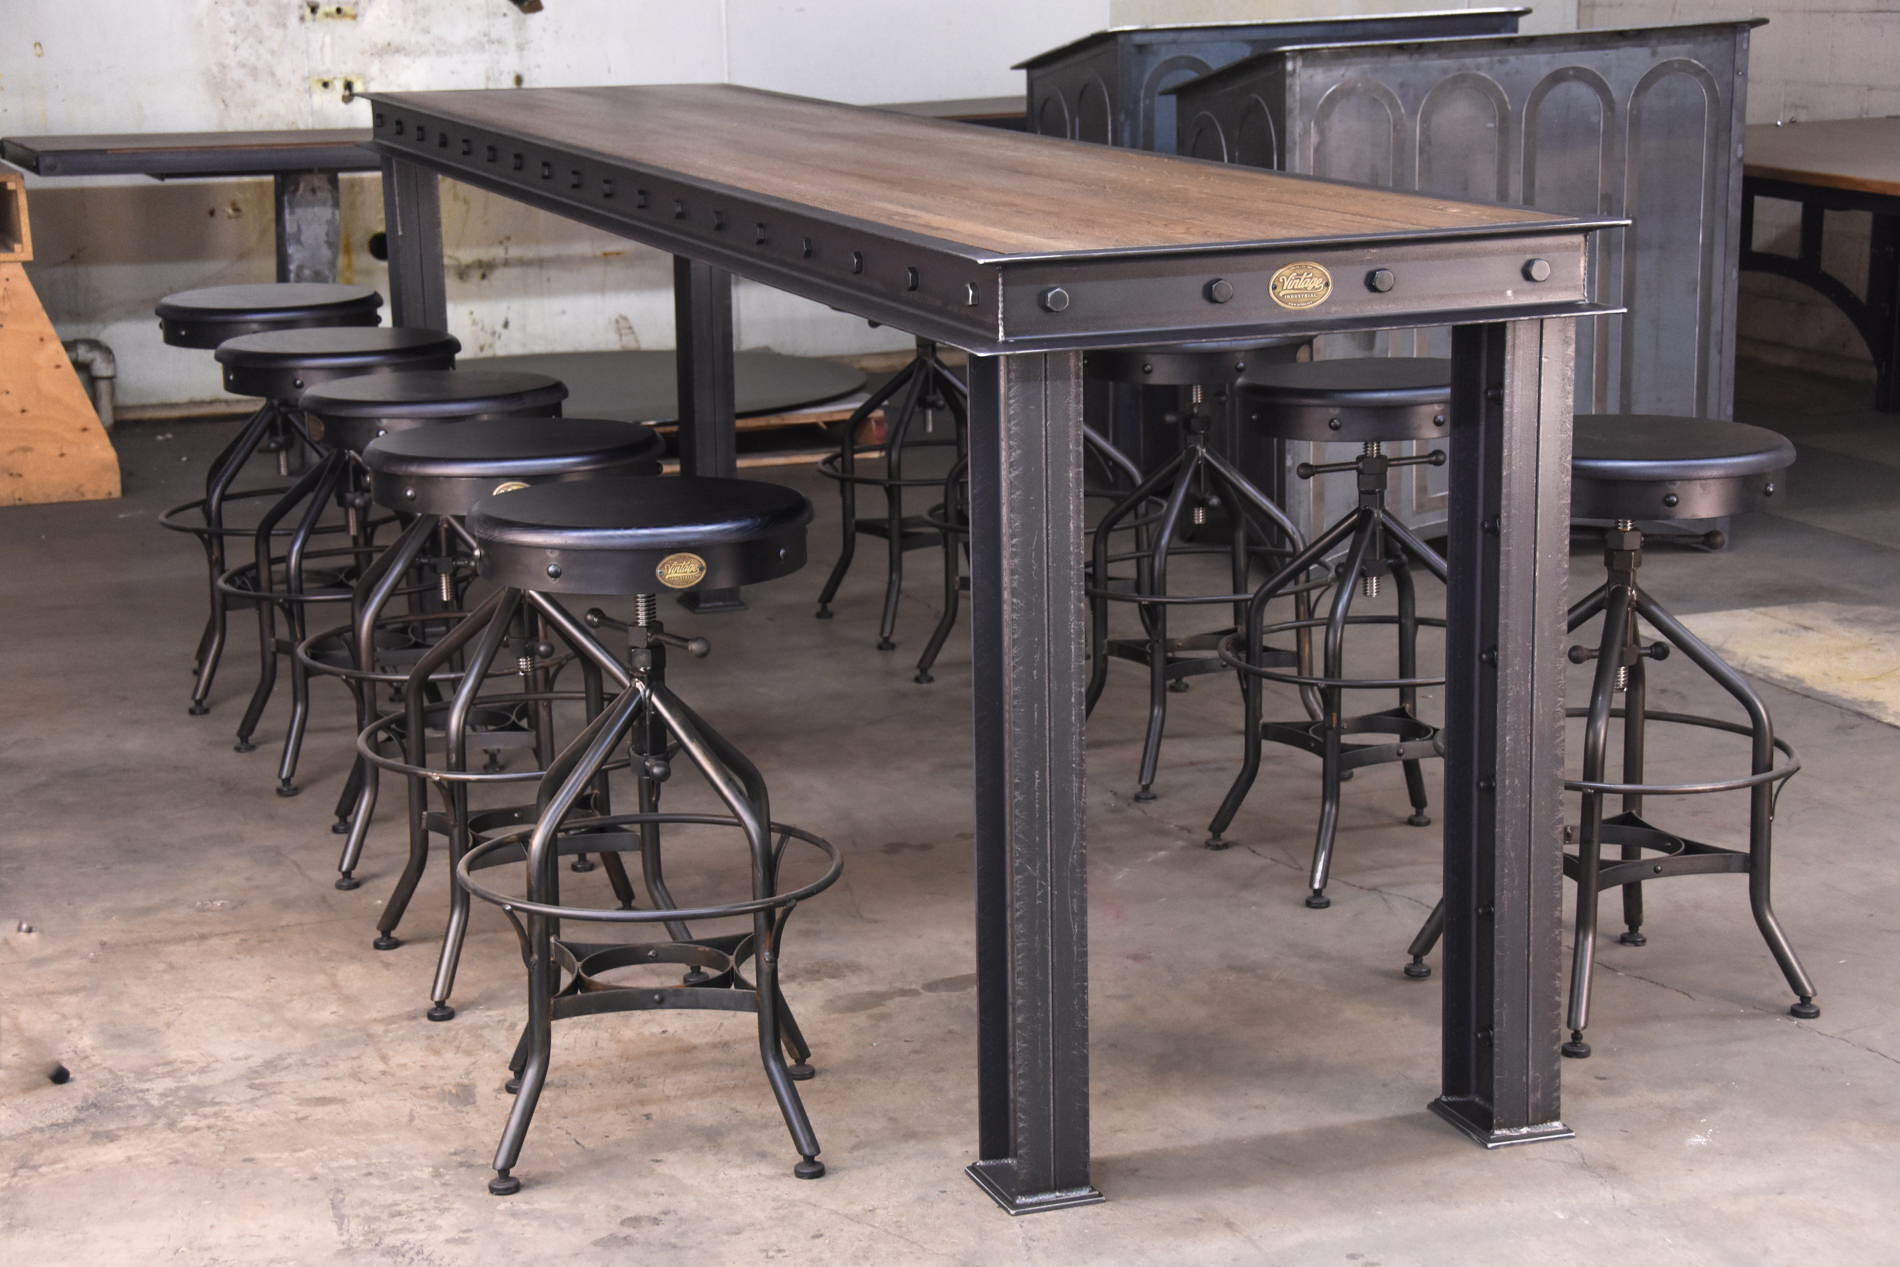 dining tables vintage industrial furniture. Black Bedroom Furniture Sets. Home Design Ideas